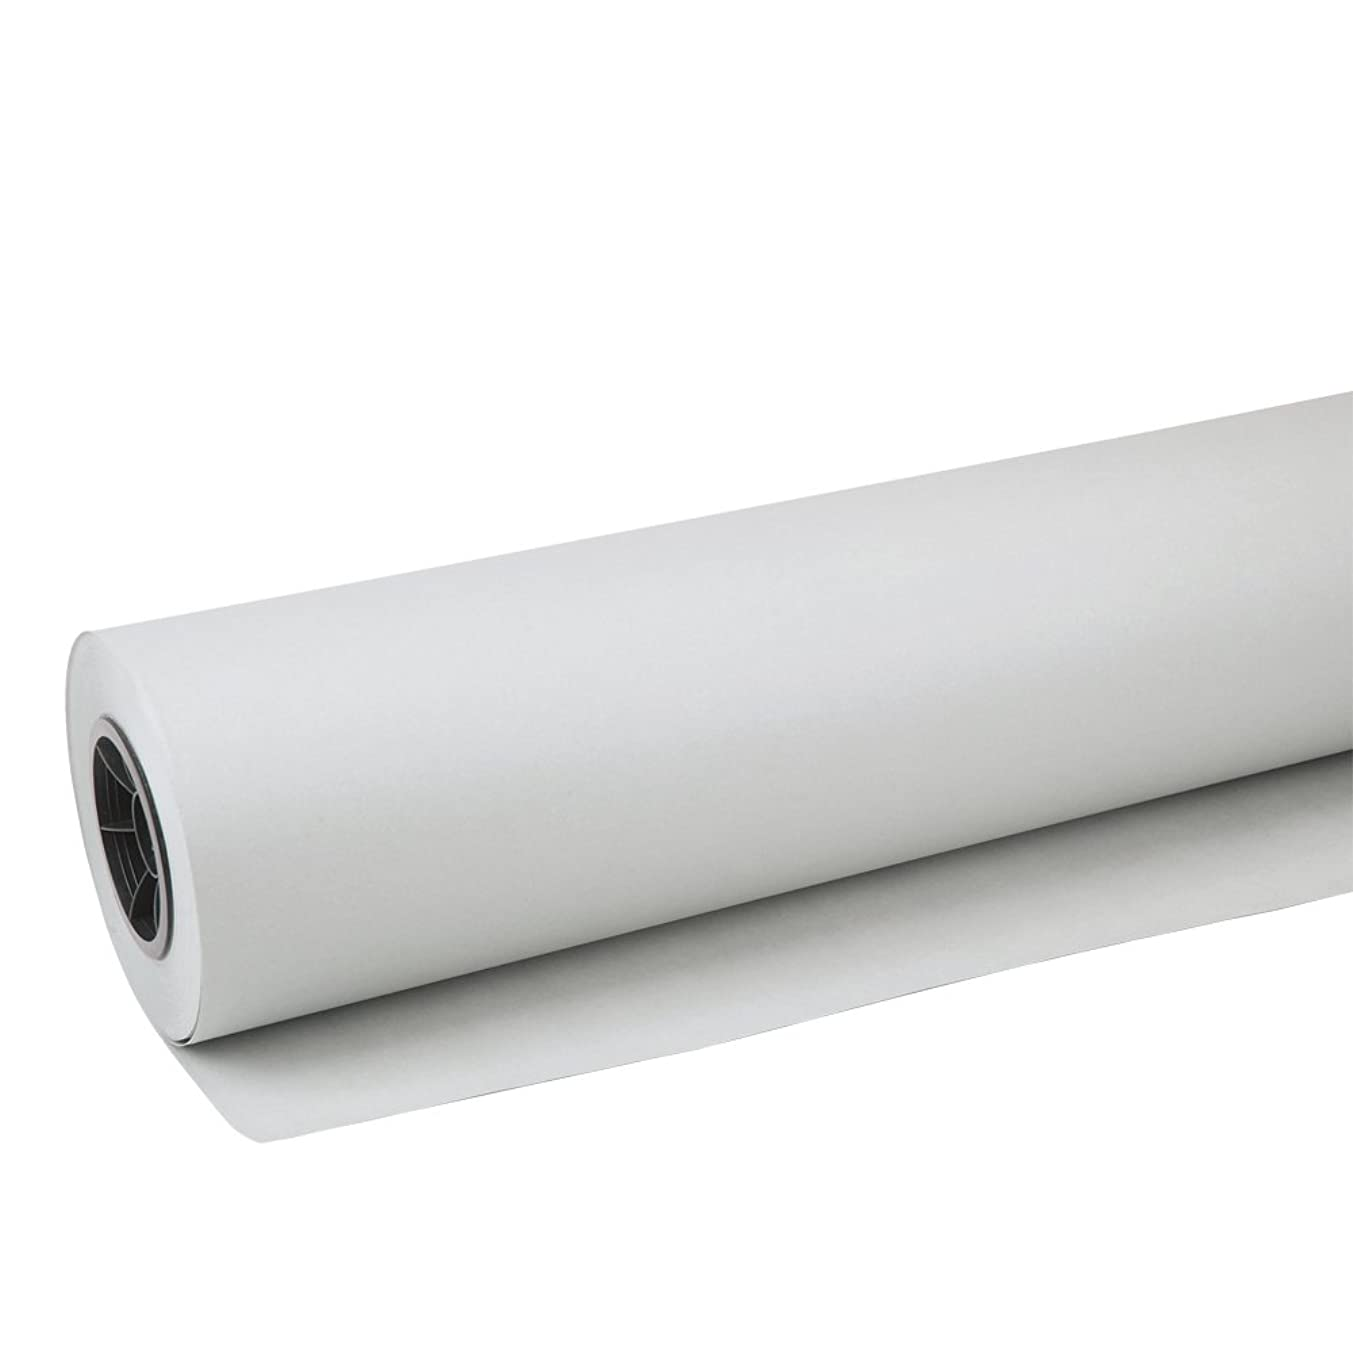 Lineco Frame Backing Paper Roll, 40lb, 36 inches X 300 Feet, Gray (613-0035)